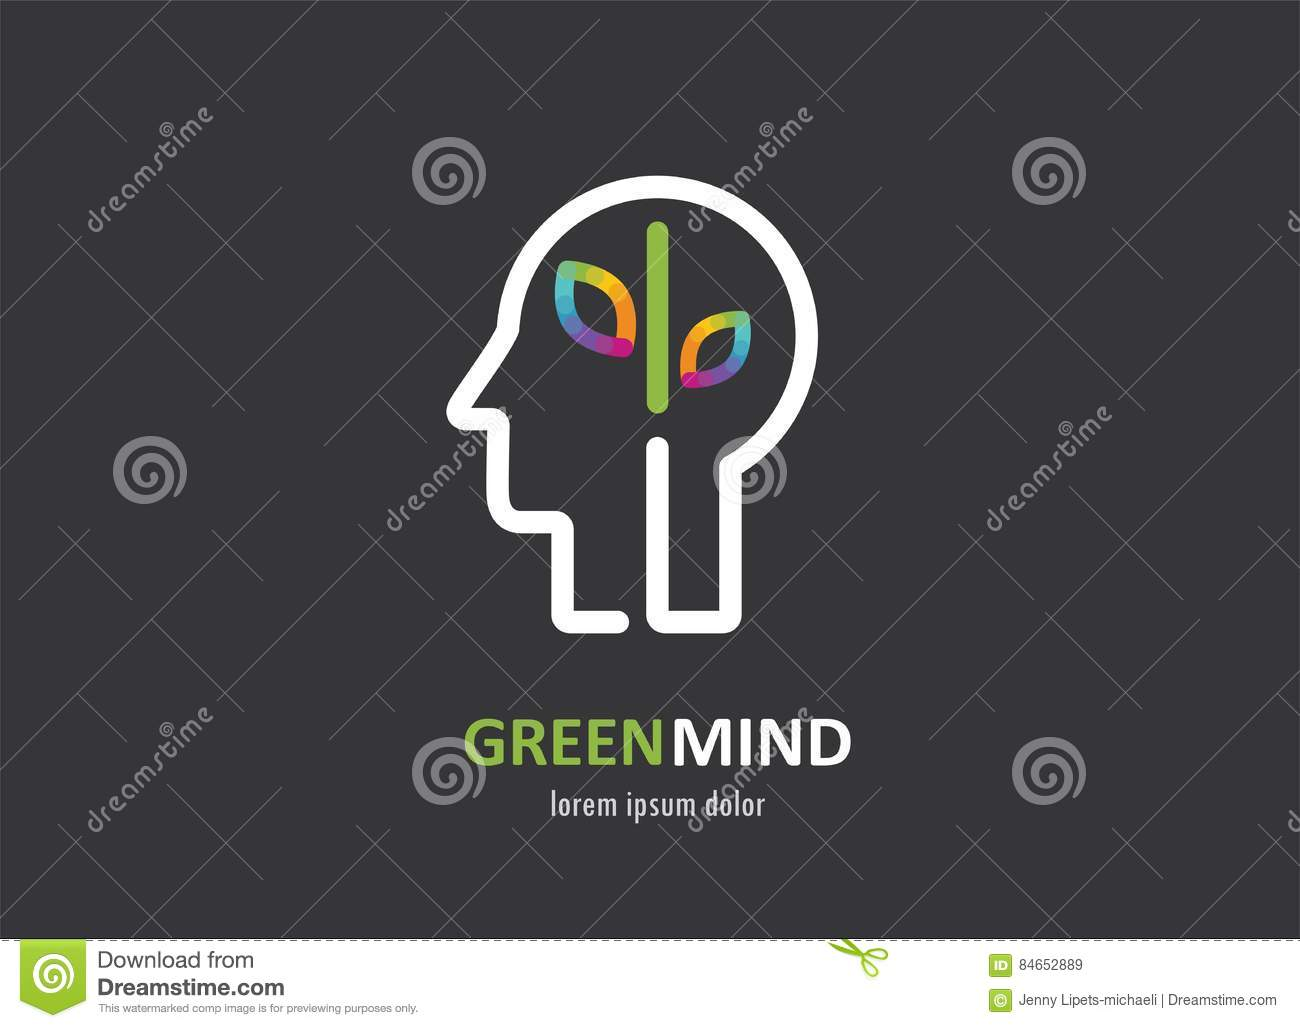 Green mind abstract colorful icon of human head brain symbol stock green mind abstract colorful icon of human head brain symbol biocorpaavc Images